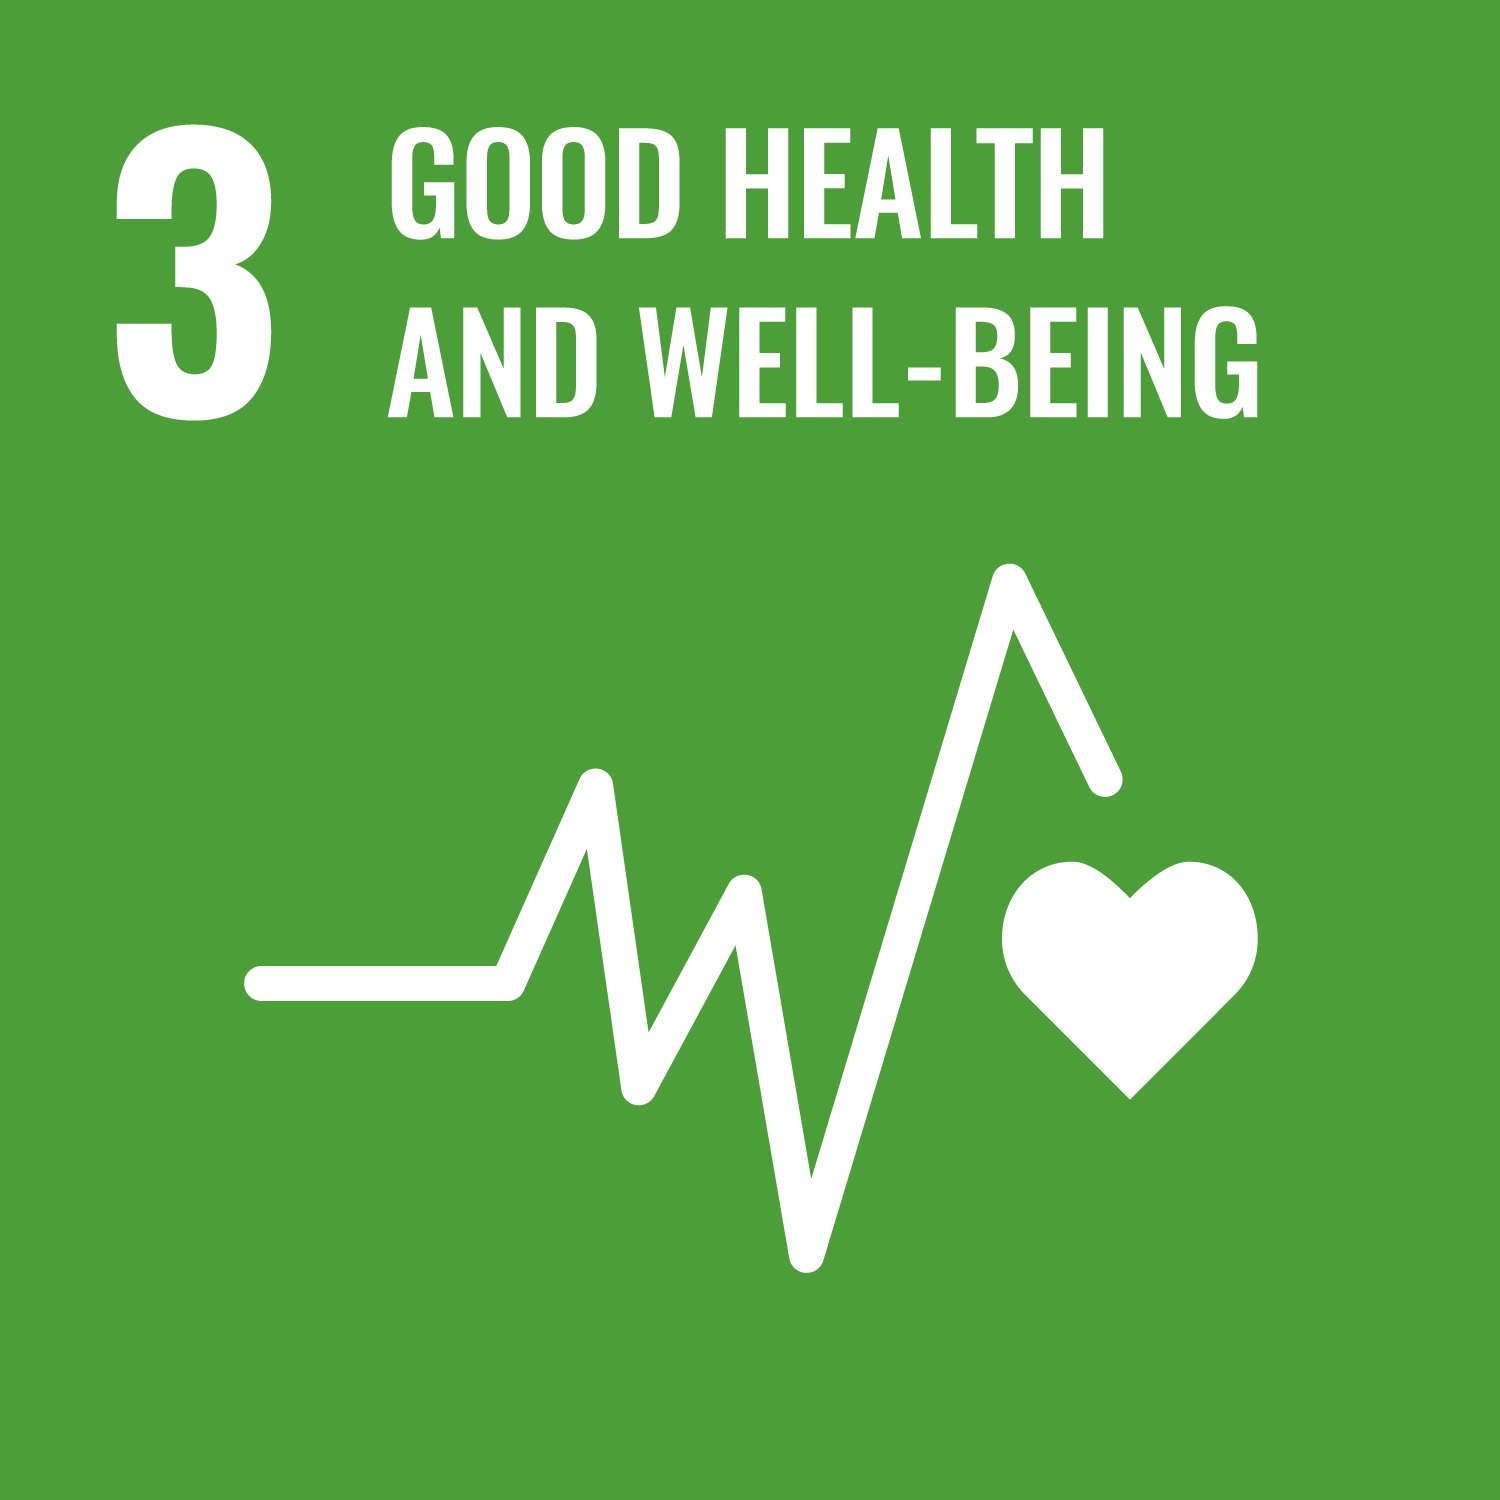 Ensuring healthy lives and promoting the well-being for all at all ages is essential to sustainable development.